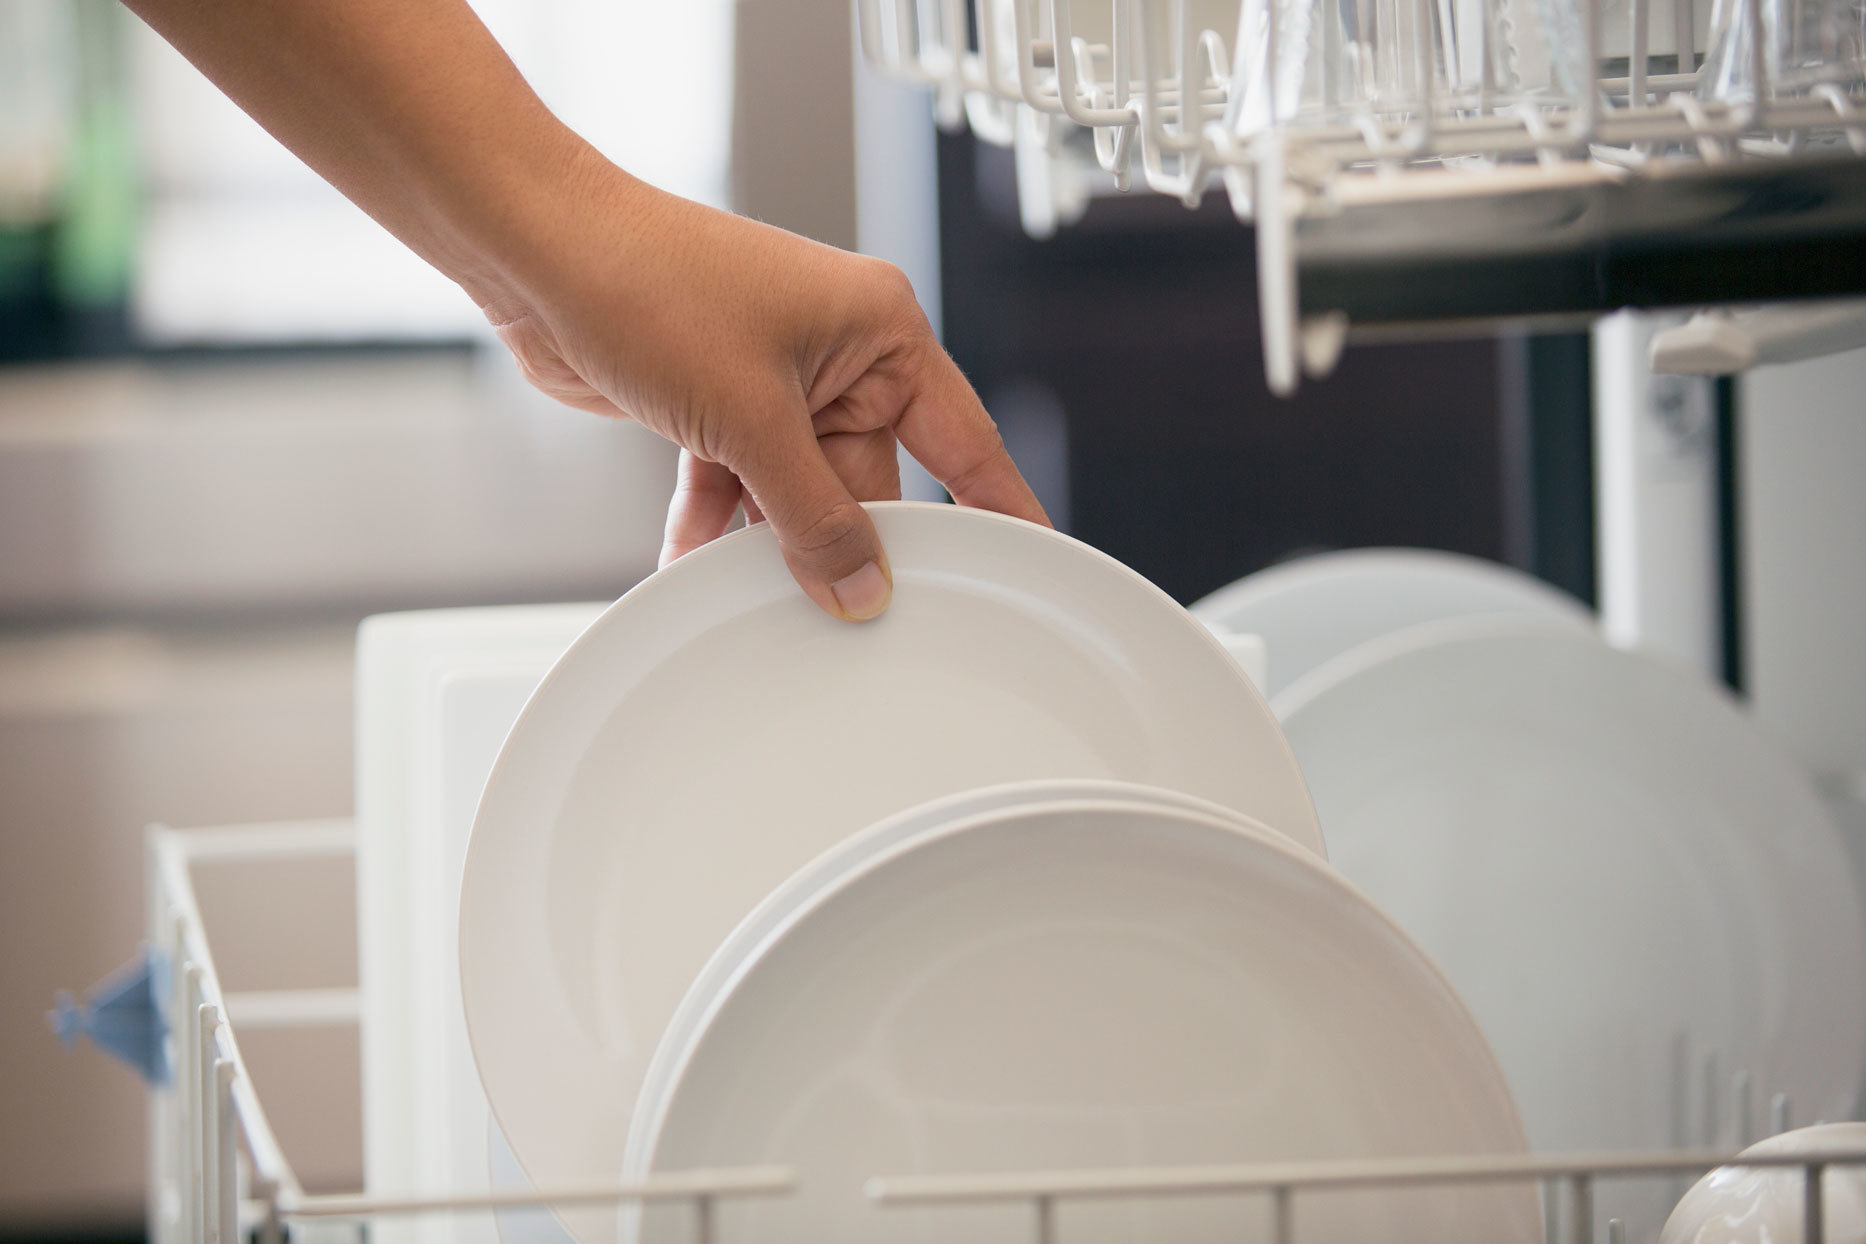 5 Mistakes You're (Probably) Making When Washing Dishes